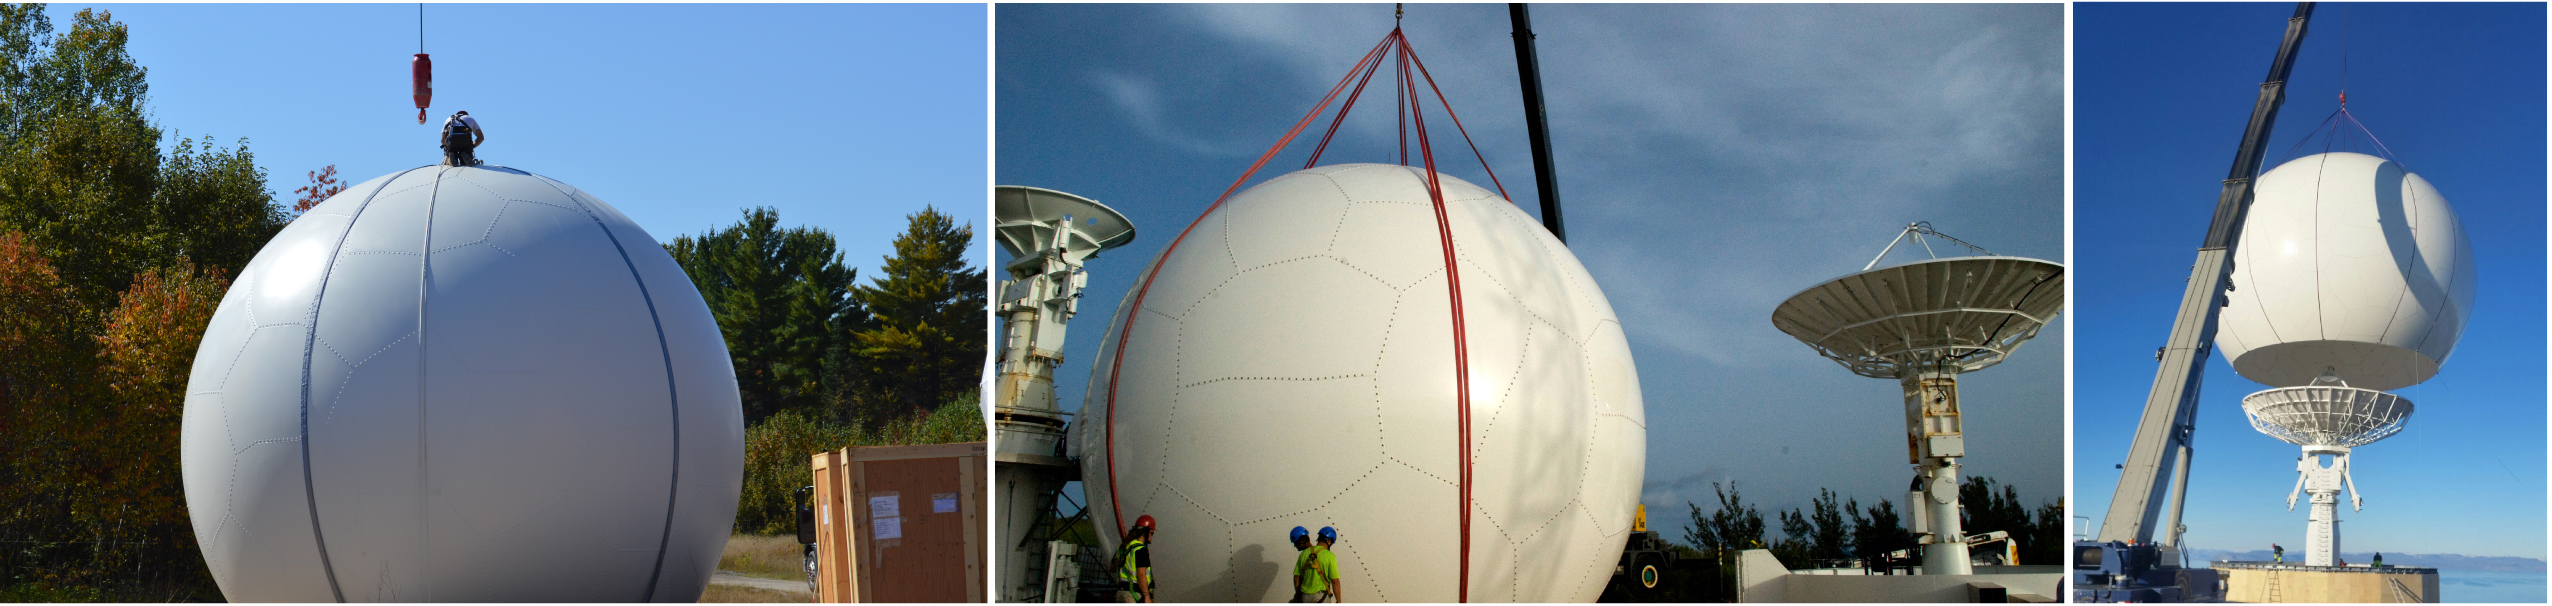 Installing three radomes with cranes